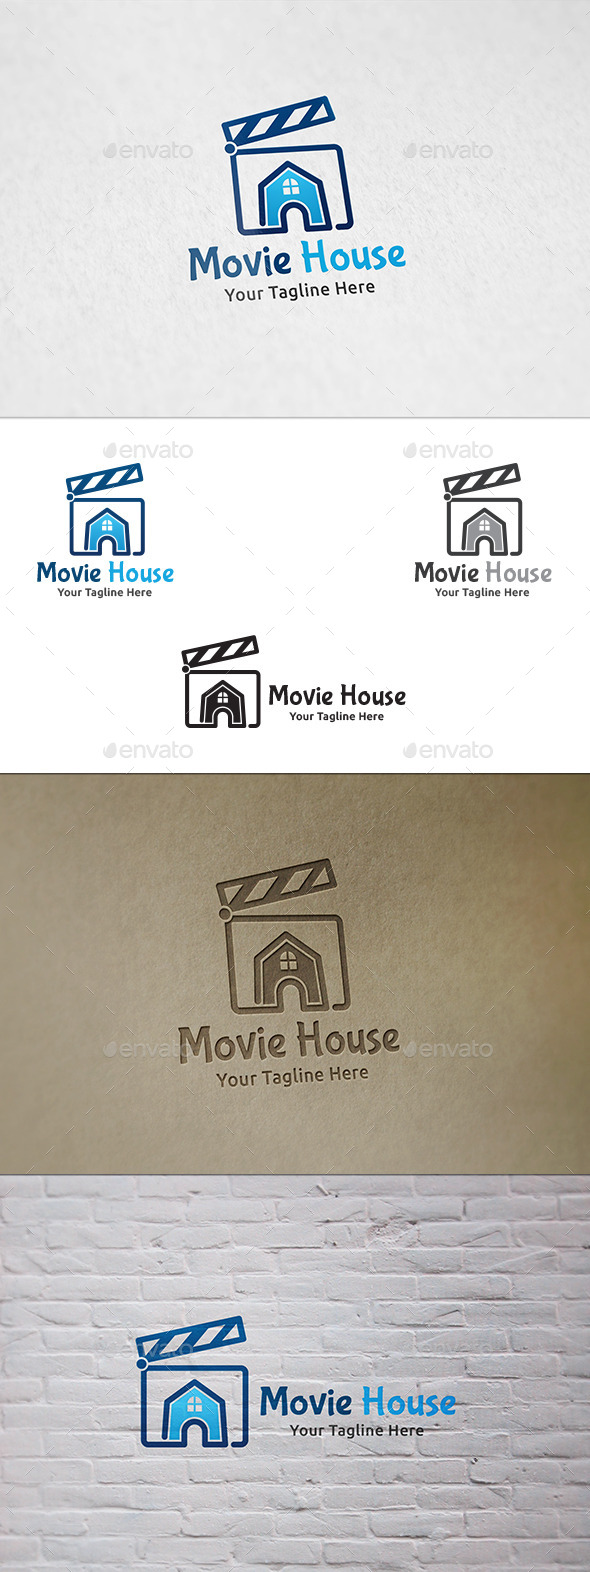 Movie House - Logo Template - Buildings Logo Templates